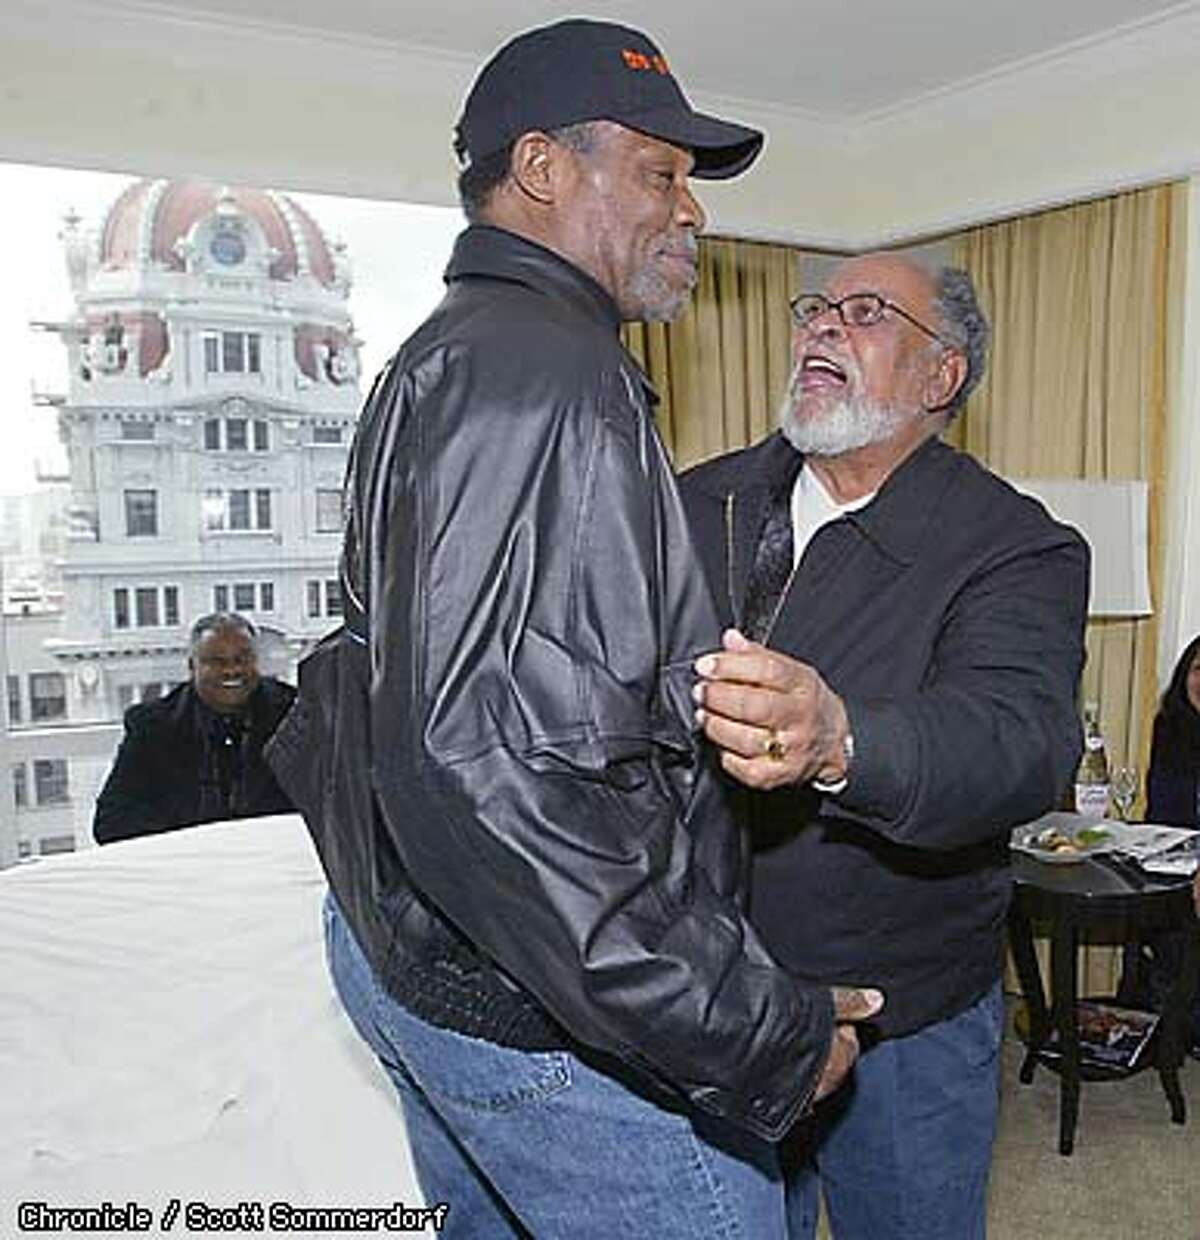 The Rev. Cecil Williams greeted Danny Glover in the morning as they assembled to start the march down Market St to protest a possible American invasion of Iraq. By Scott Sommerdorf/Chronicle